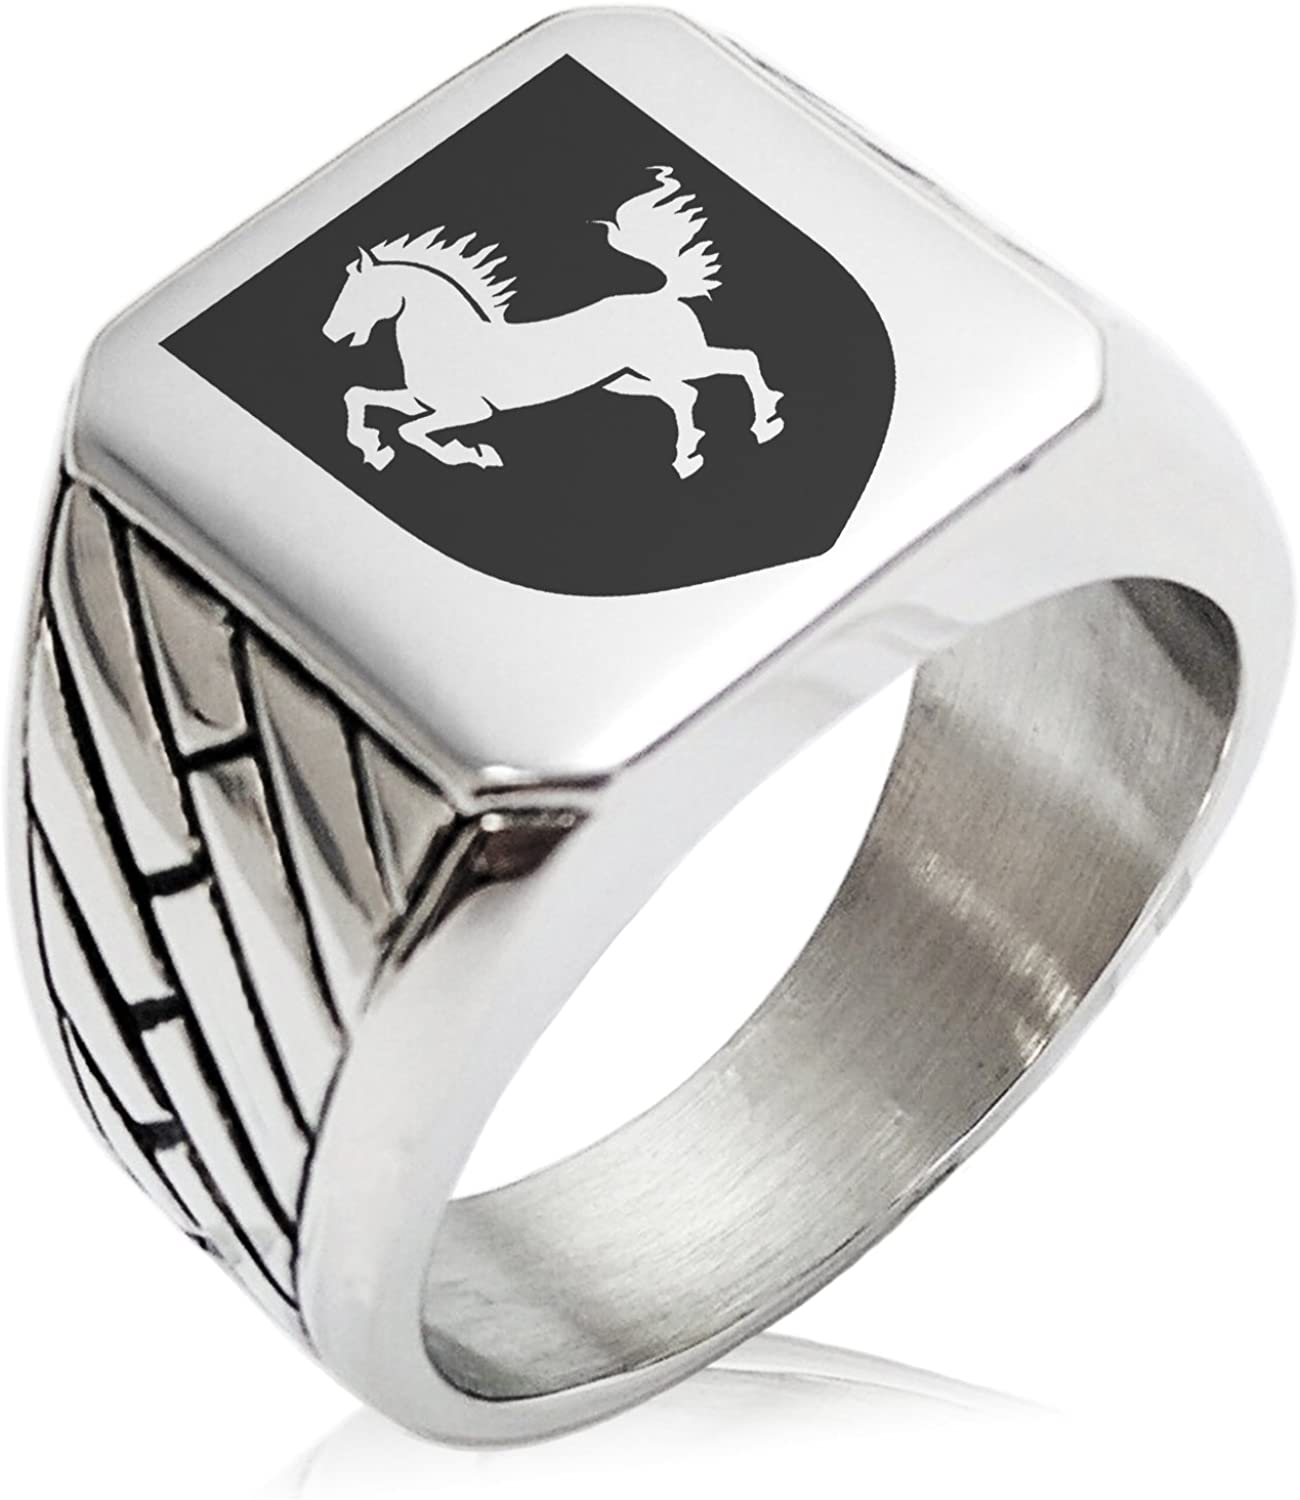 Tioneer Attention brand Stainless Steel Horse Battle Max 47% OFF Coat Shield Geometr of Arms